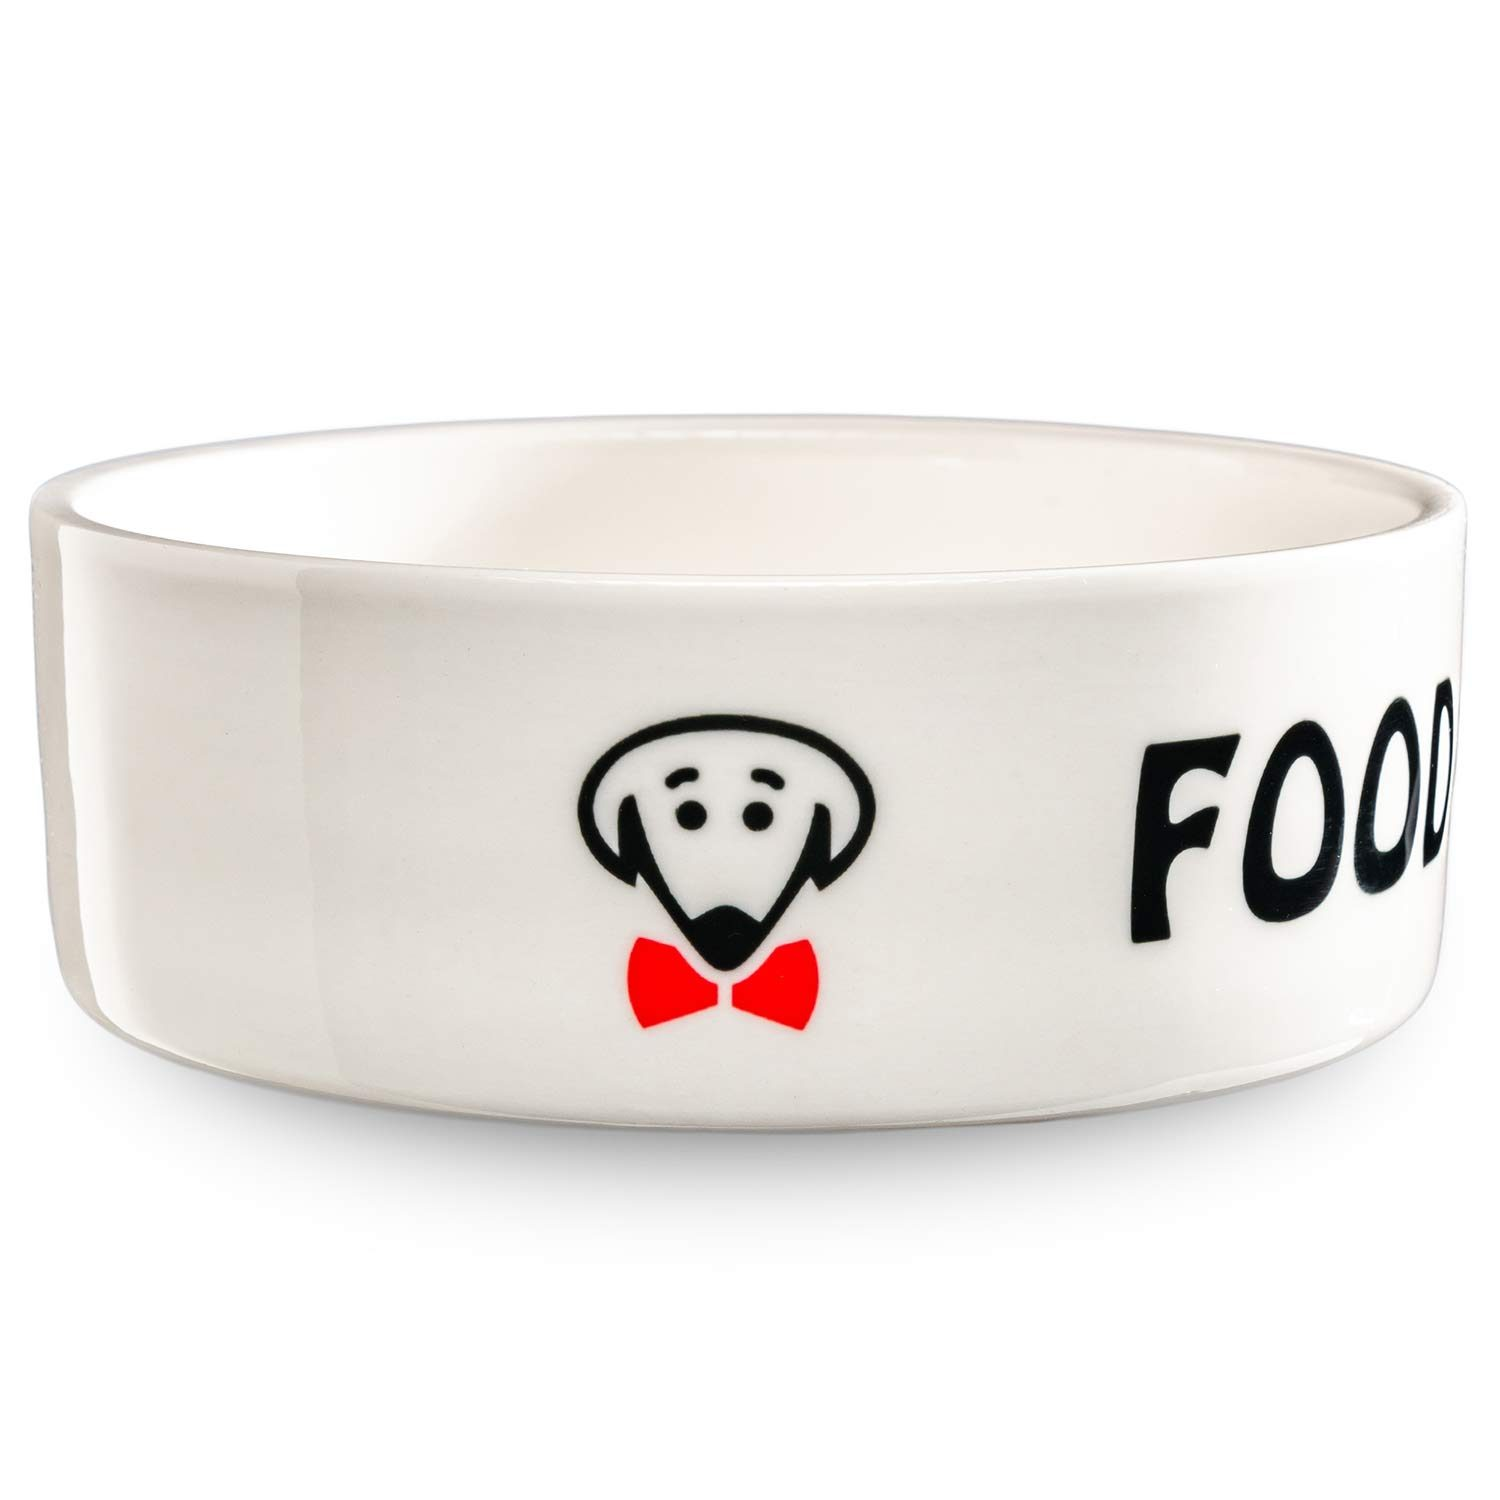 Food for the Boss pet bowl in white by Beau Tyler